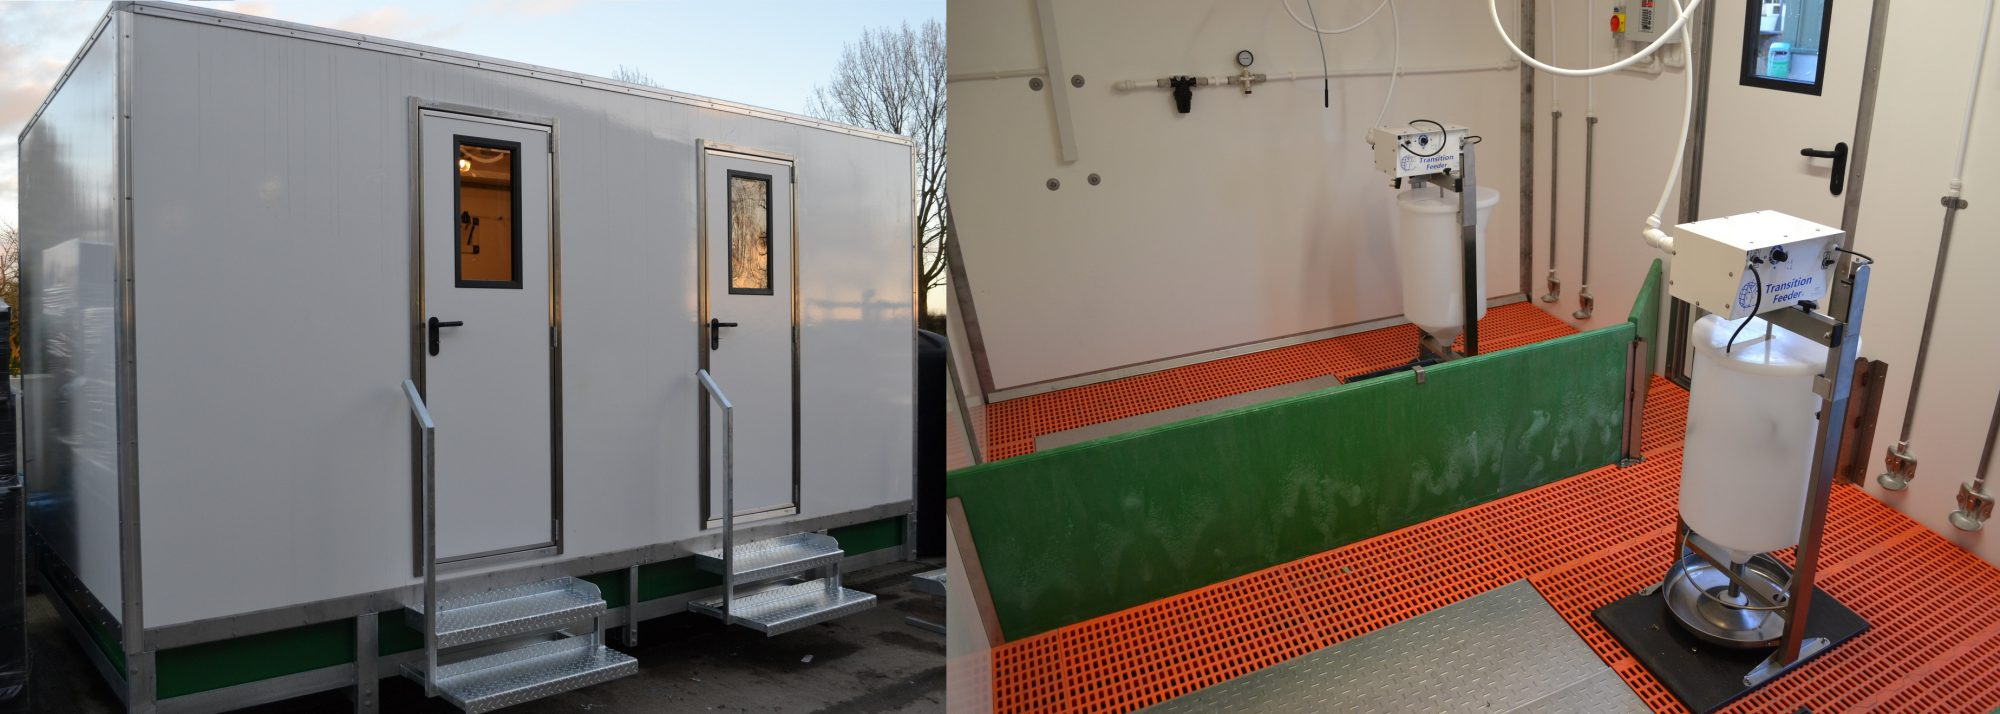 http://www.quality-equipment.co.uk/wp-content/uploads/Nursery-cabin-in-and-out-e1470904687108.jpg